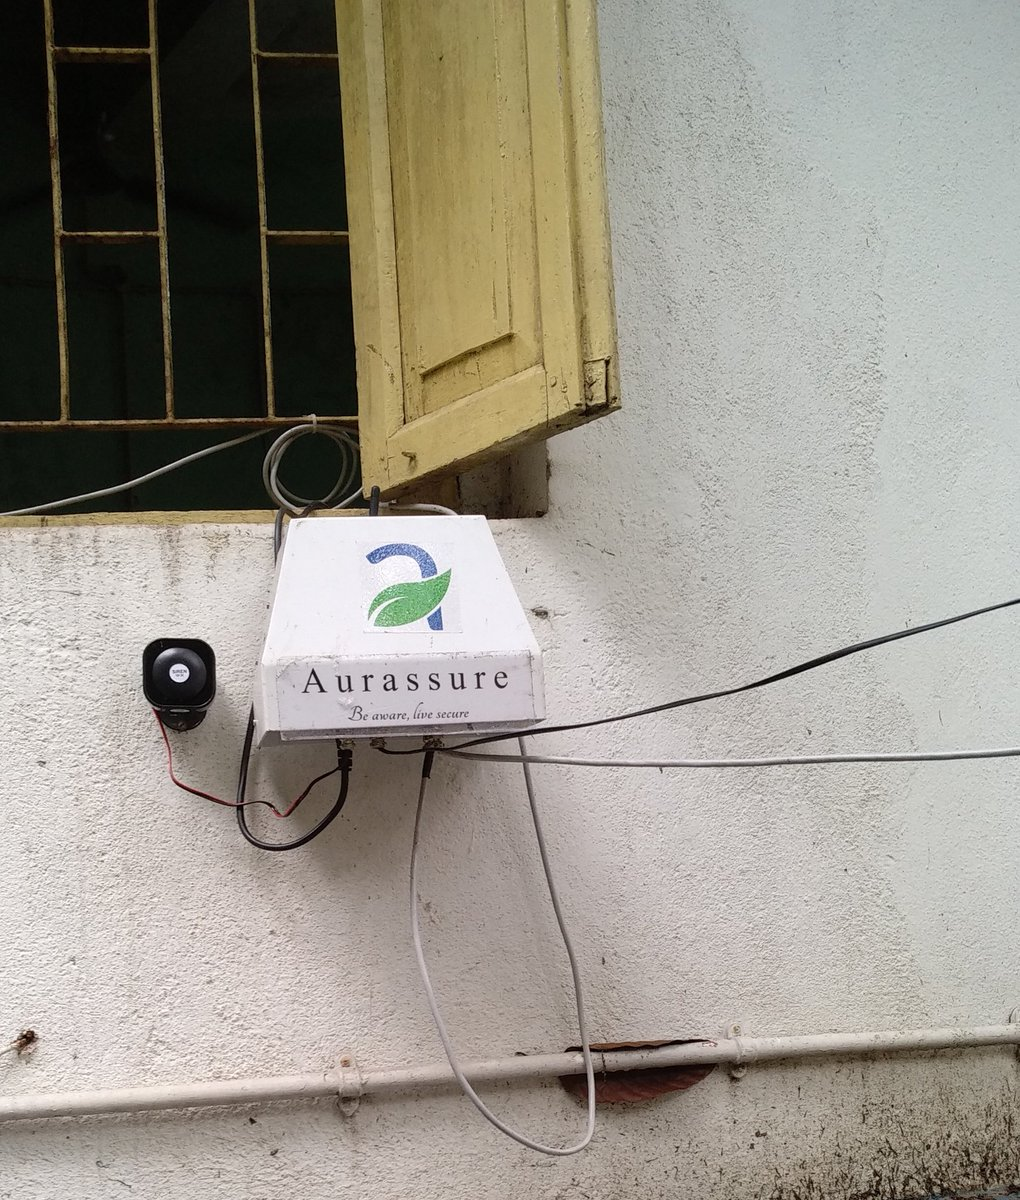 Thread By Jikkuvarghese As Kerala Is Recovering From The House Wiring Job In Kolkata Here Are Ultrasonic Sensors Fixed At Various Points Of City Single Sensor Costs Around Rs25000 All Iot Based And Non Contact To Water 6 N